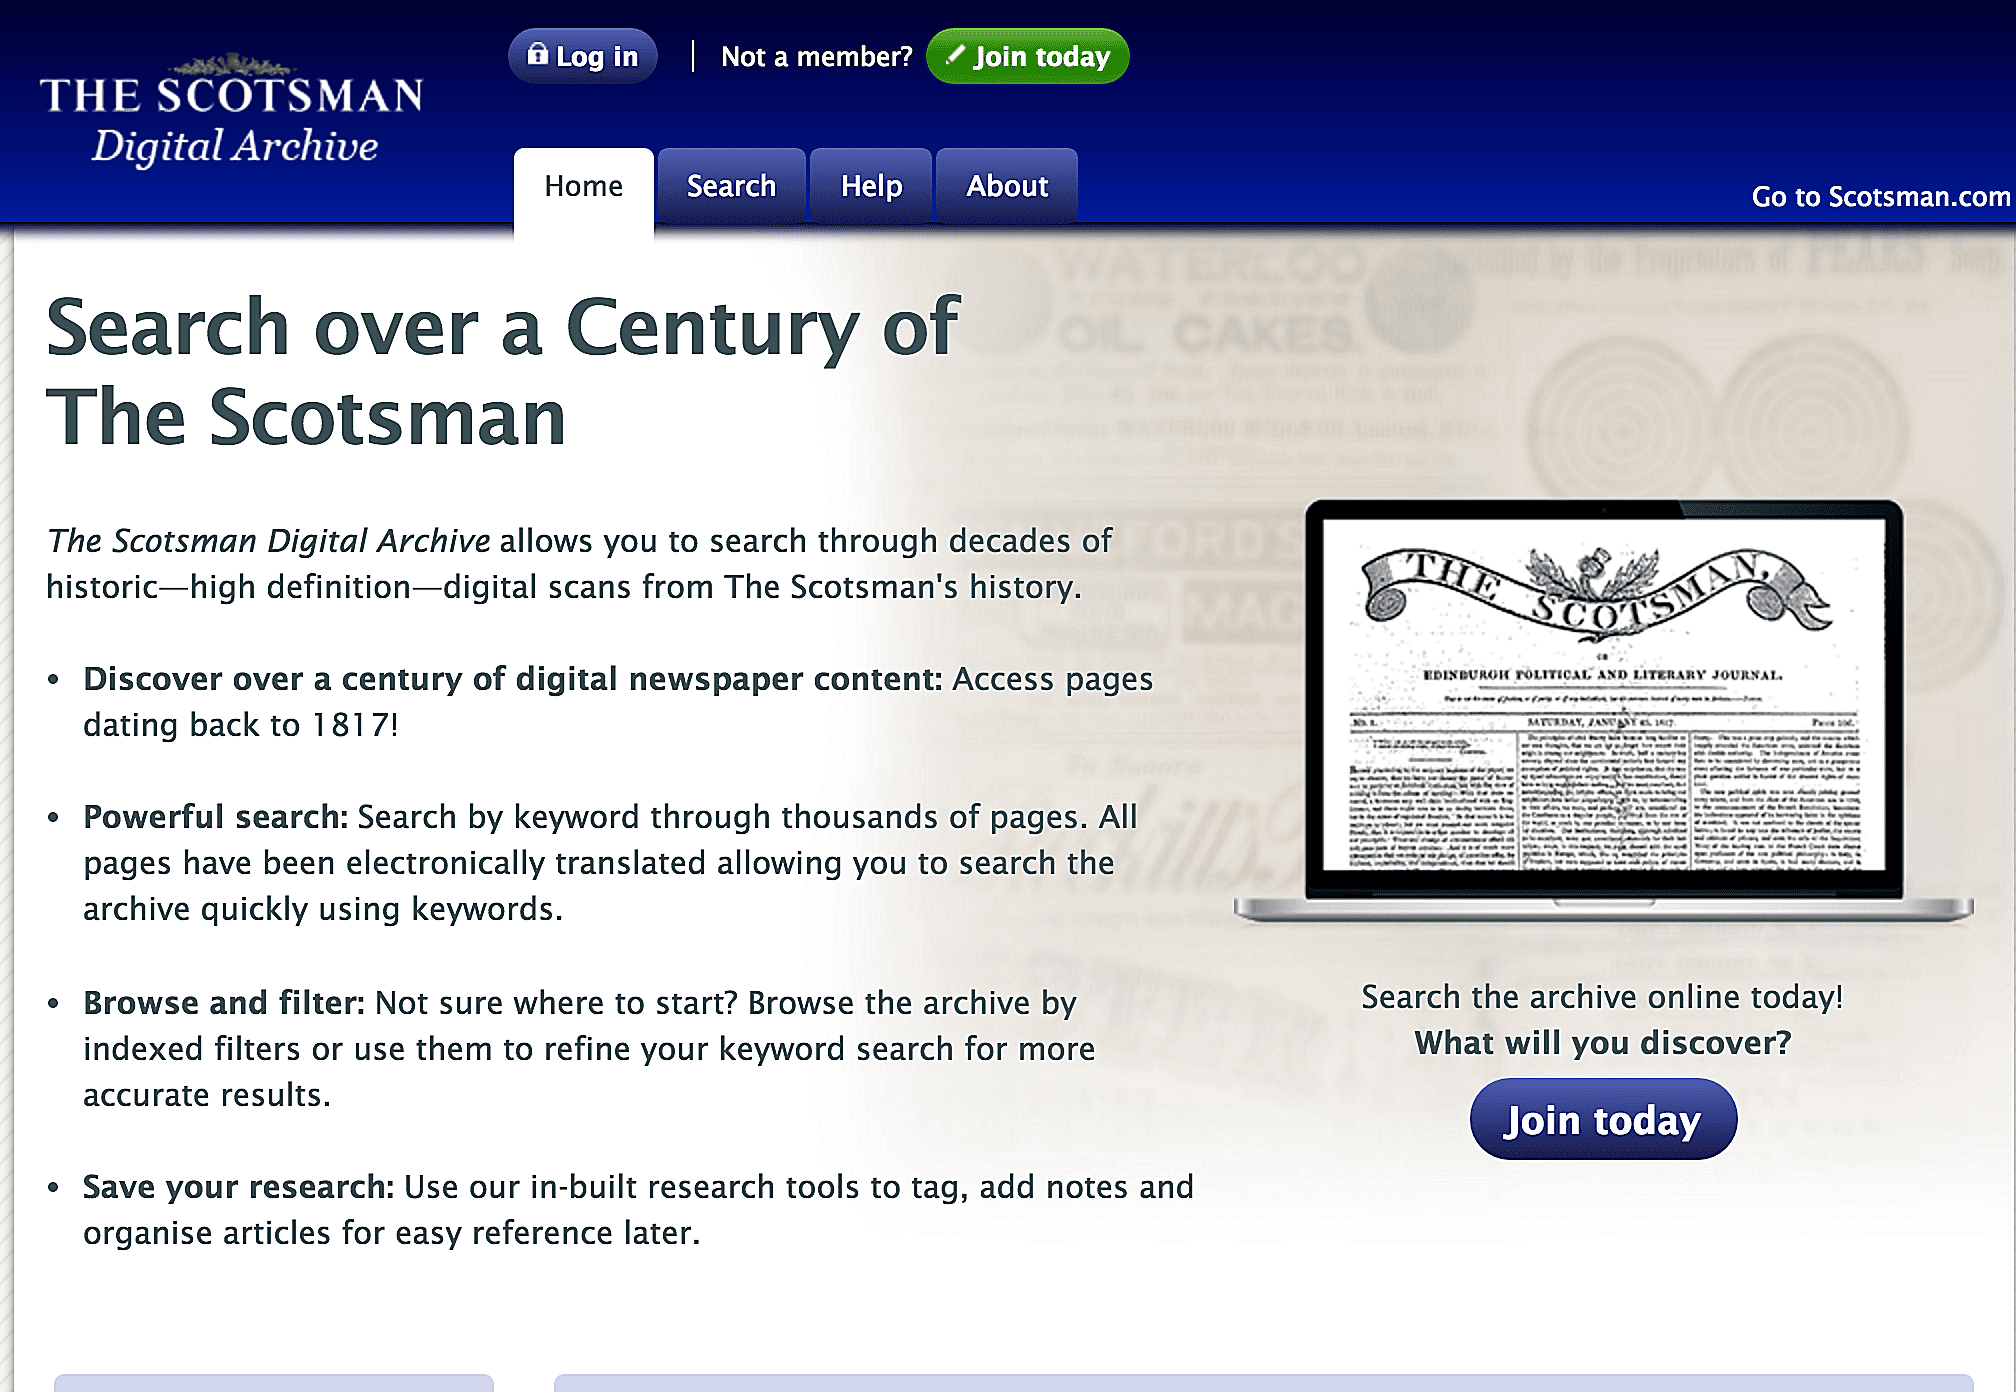 The Scotsman Digital Archive offers searching and browsing of over a century of newspaper content.